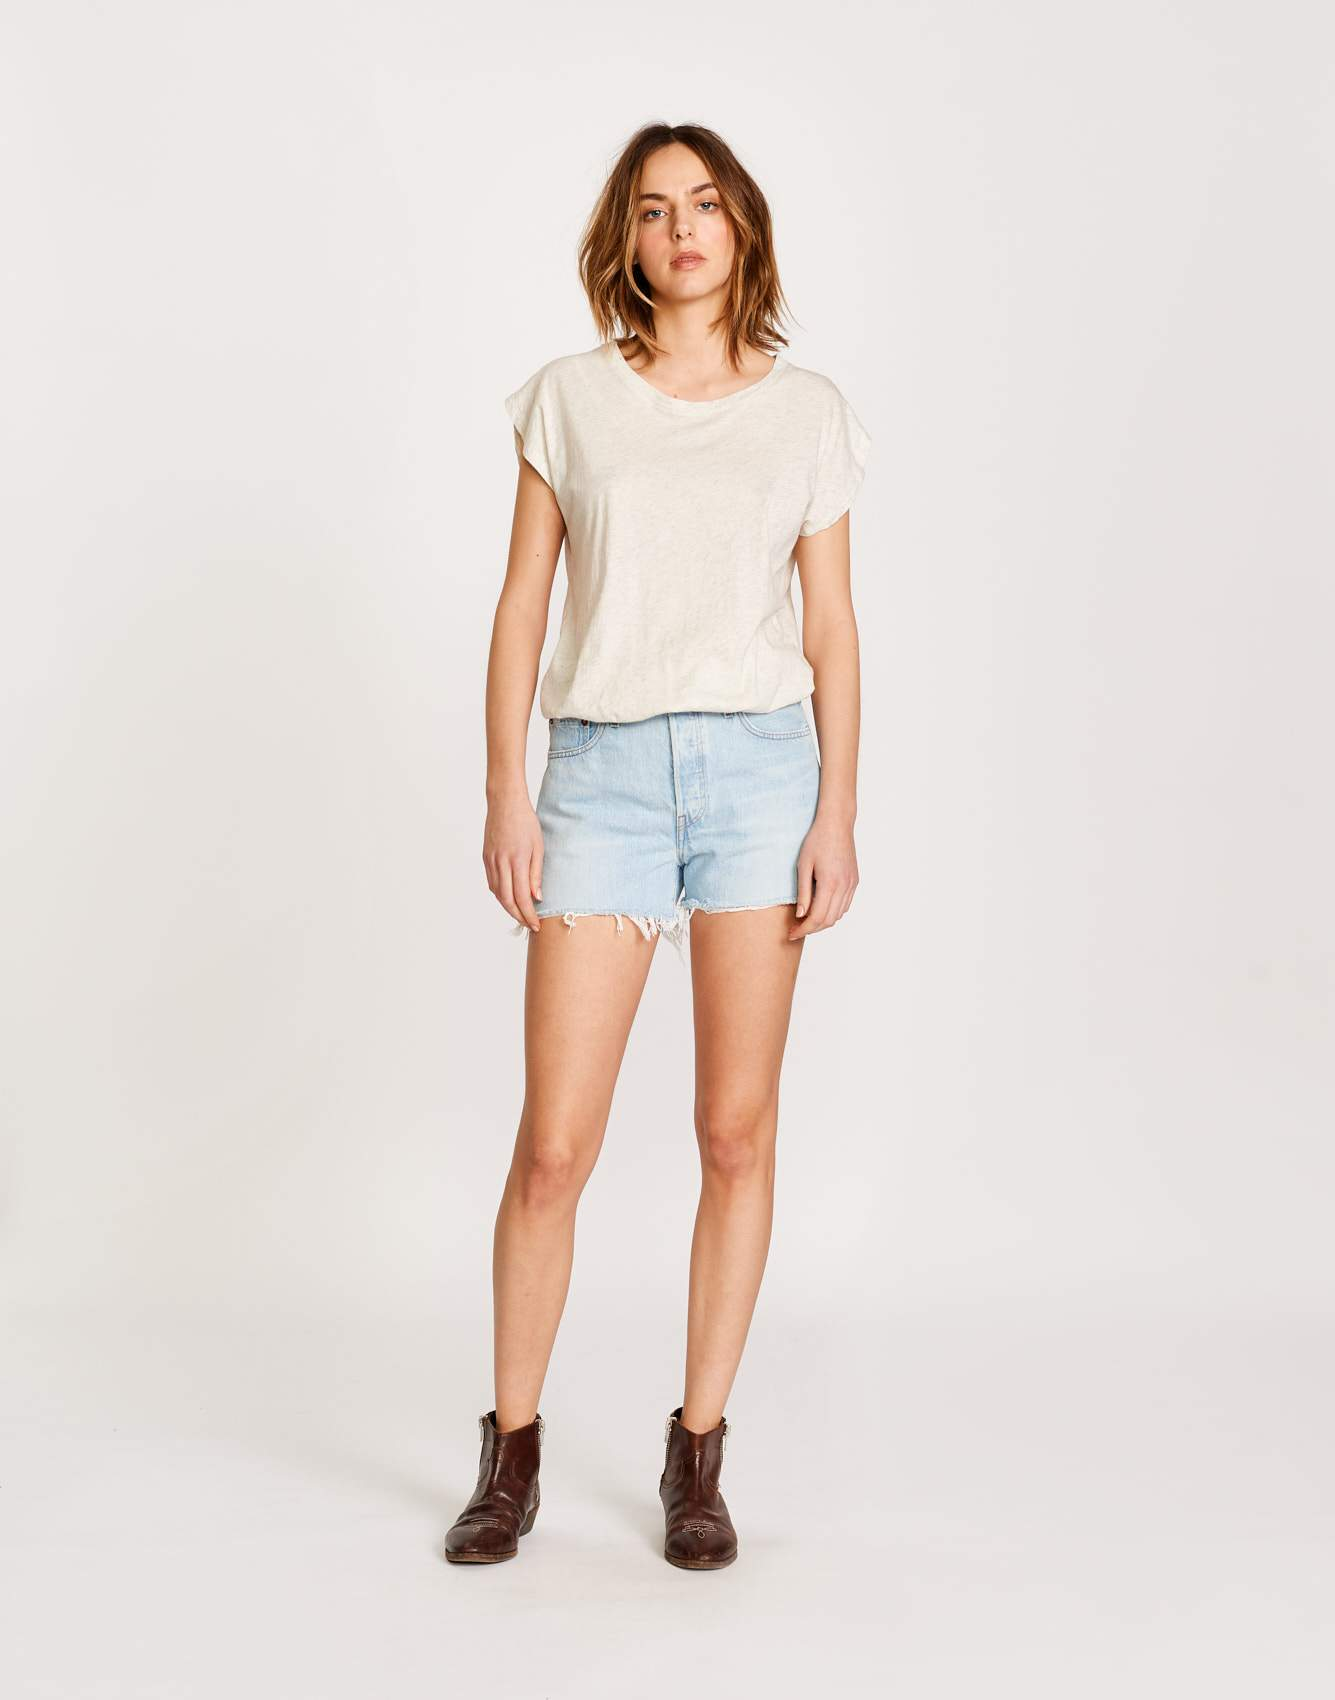 Bellerose white cotton body for women